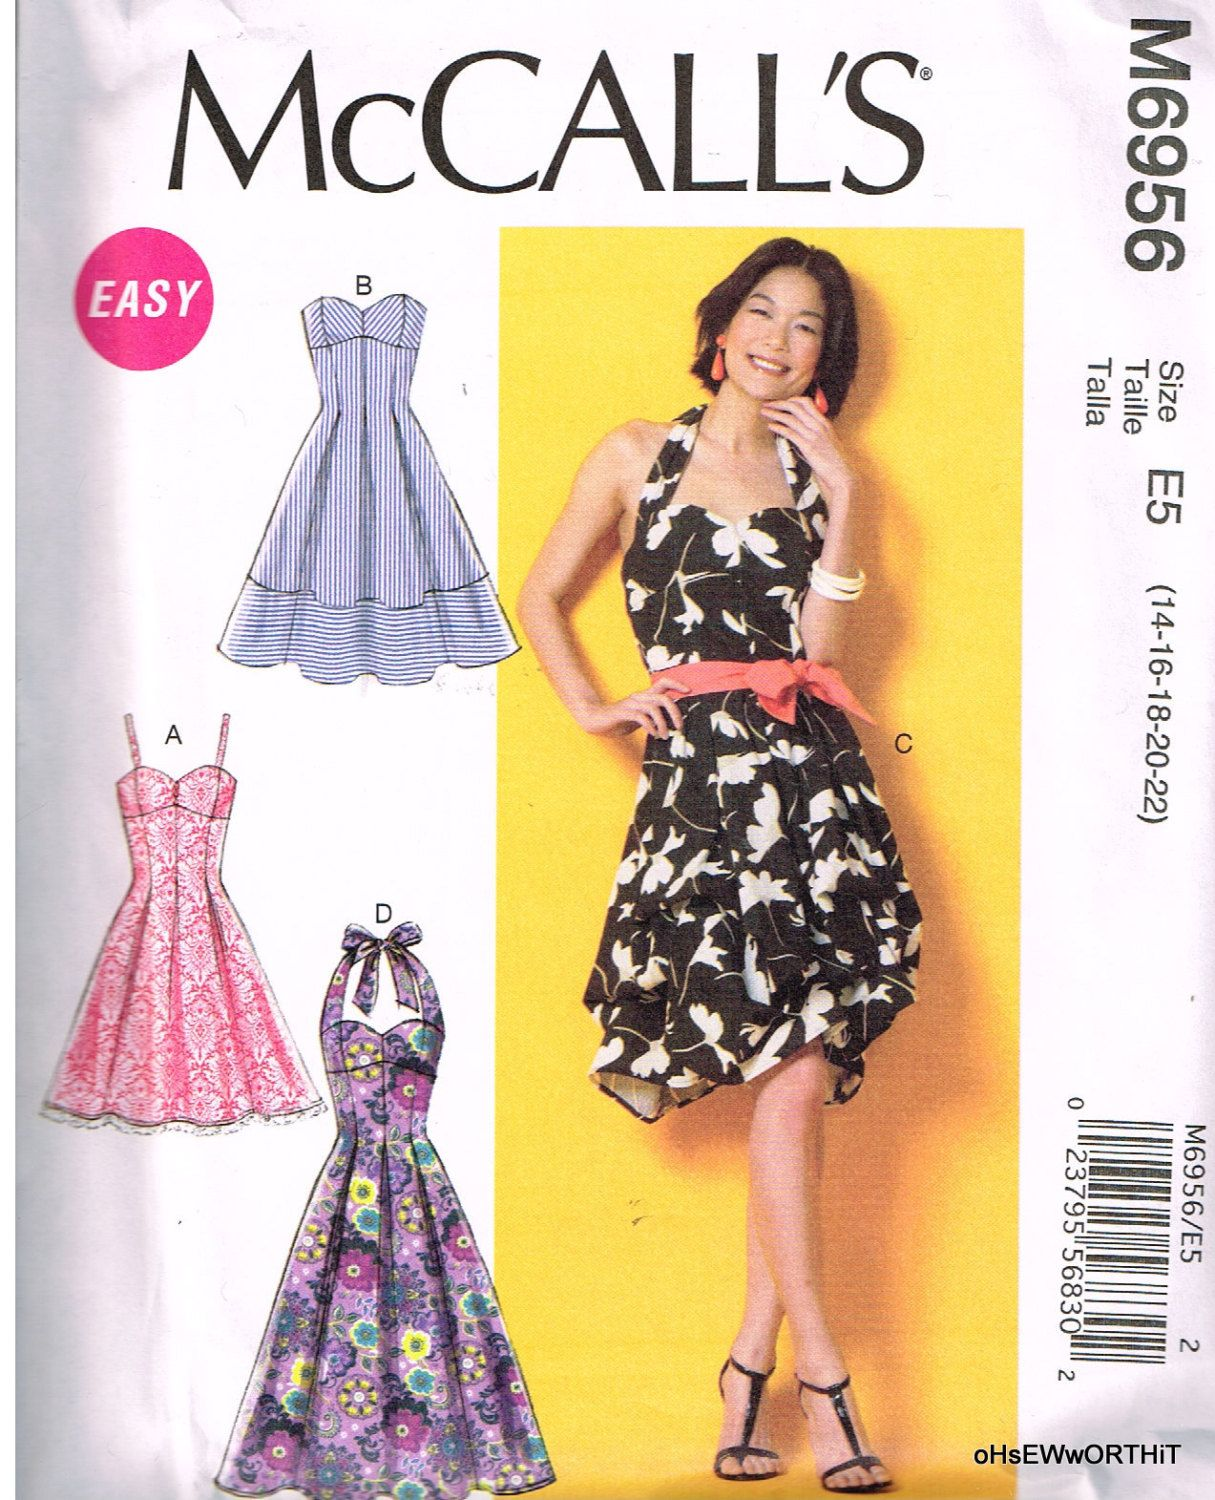 Mccall 39 S M6956 Sewing Pattern Women 39 S Dresses Size 14 16 18 20 22 Sewing Summer Dresses Summer Dress Sewing Patterns Sewing Dresses [ 1500 x 1215 Pixel ]